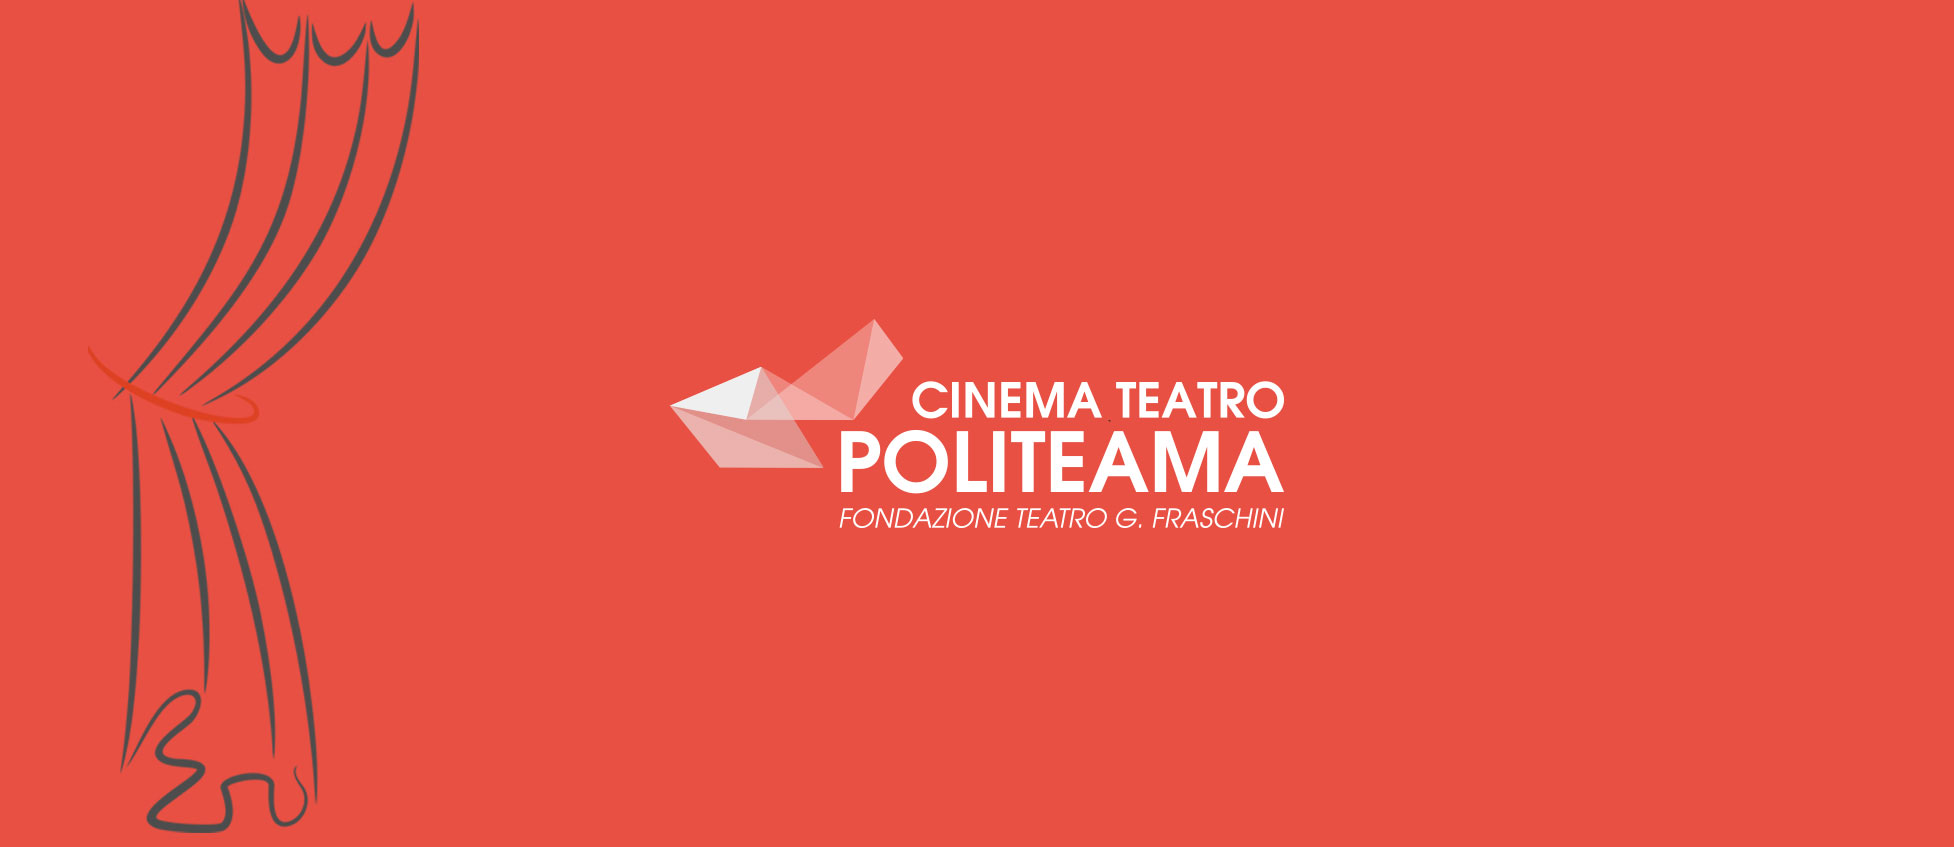 CinemaPoliteama